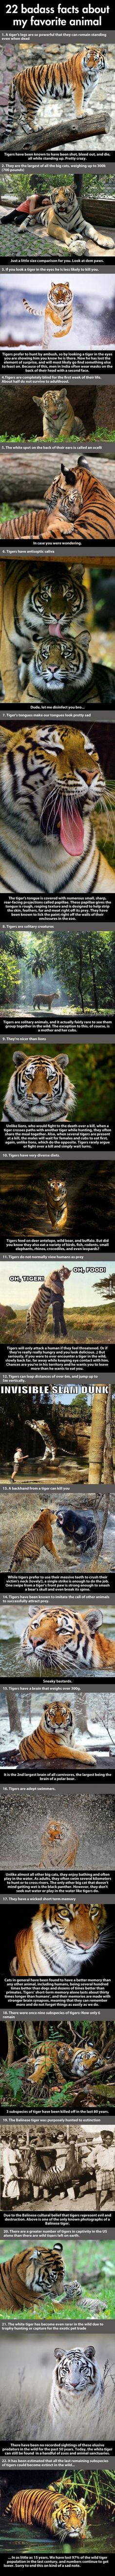 22 Badass Facts About Tigers,  Click the link to view today's funniest pictures!